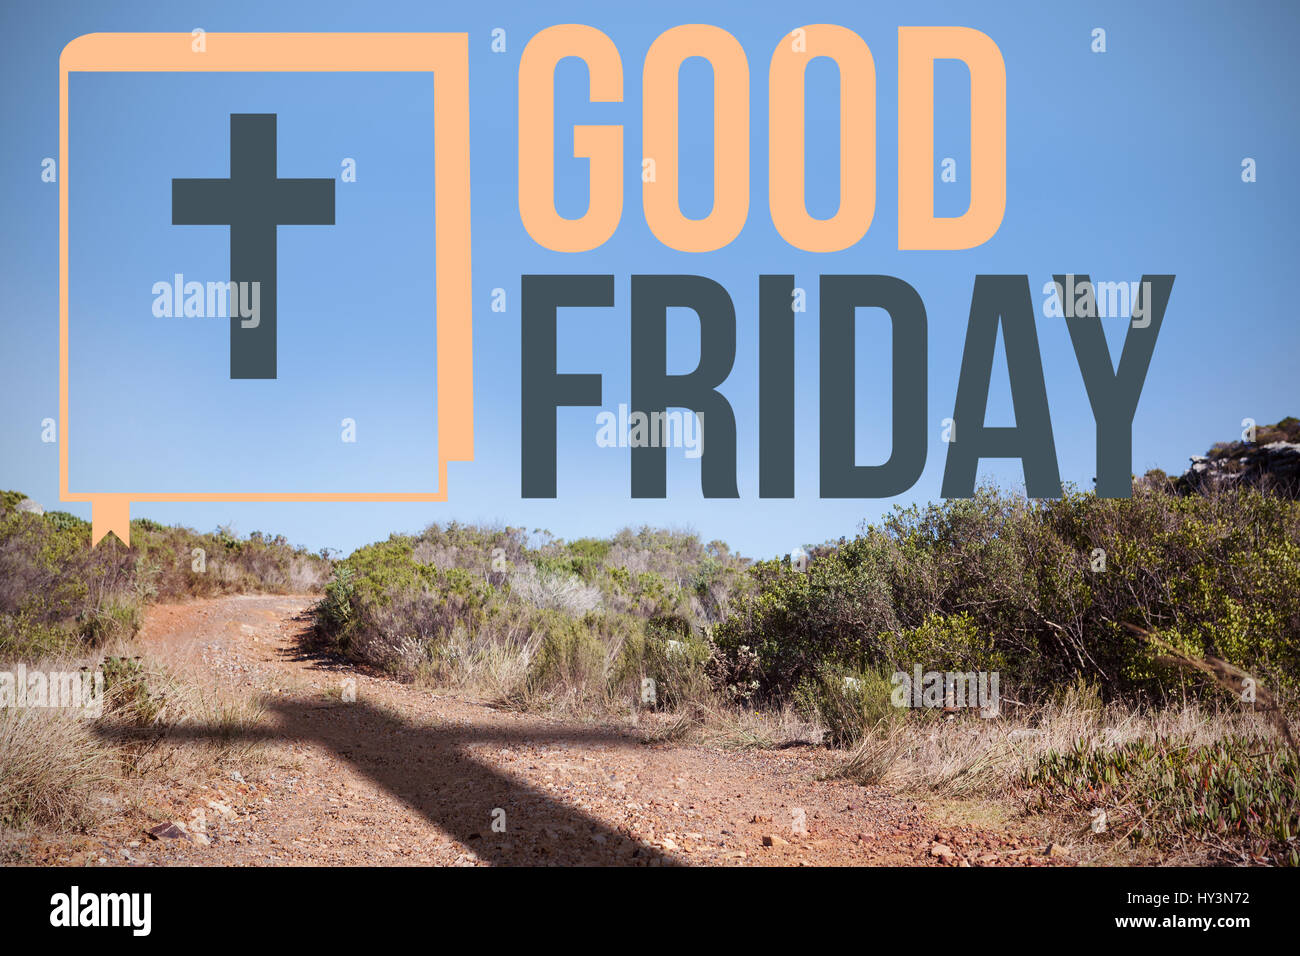 good friday logo against crucifix on the path - Stock Image